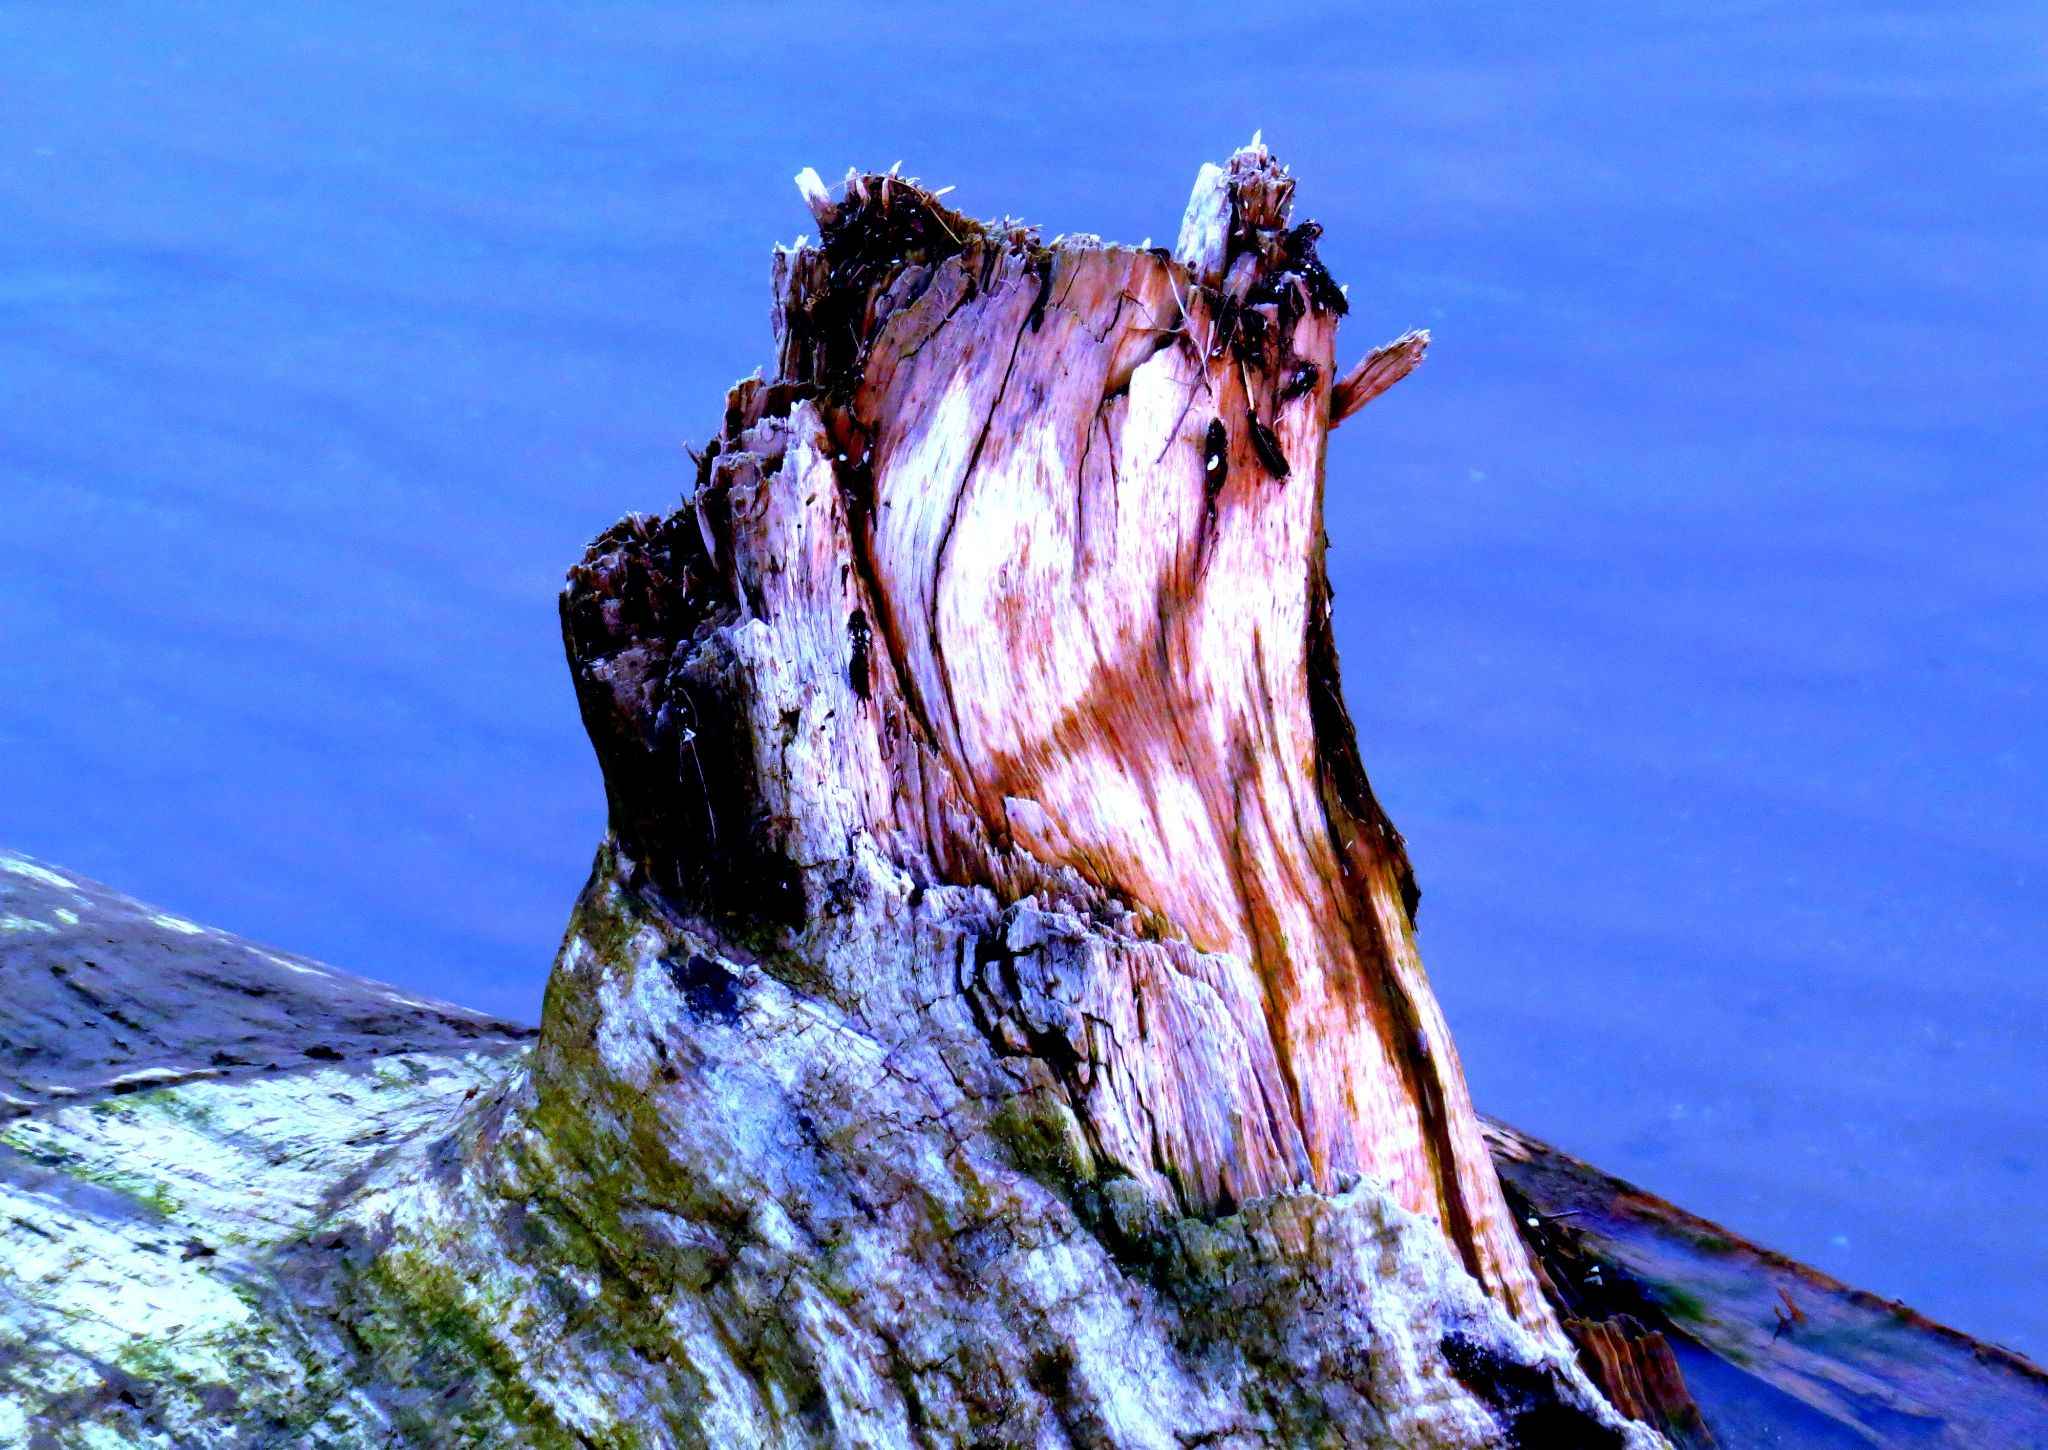 Psychedelic driftwood by pennieawhite